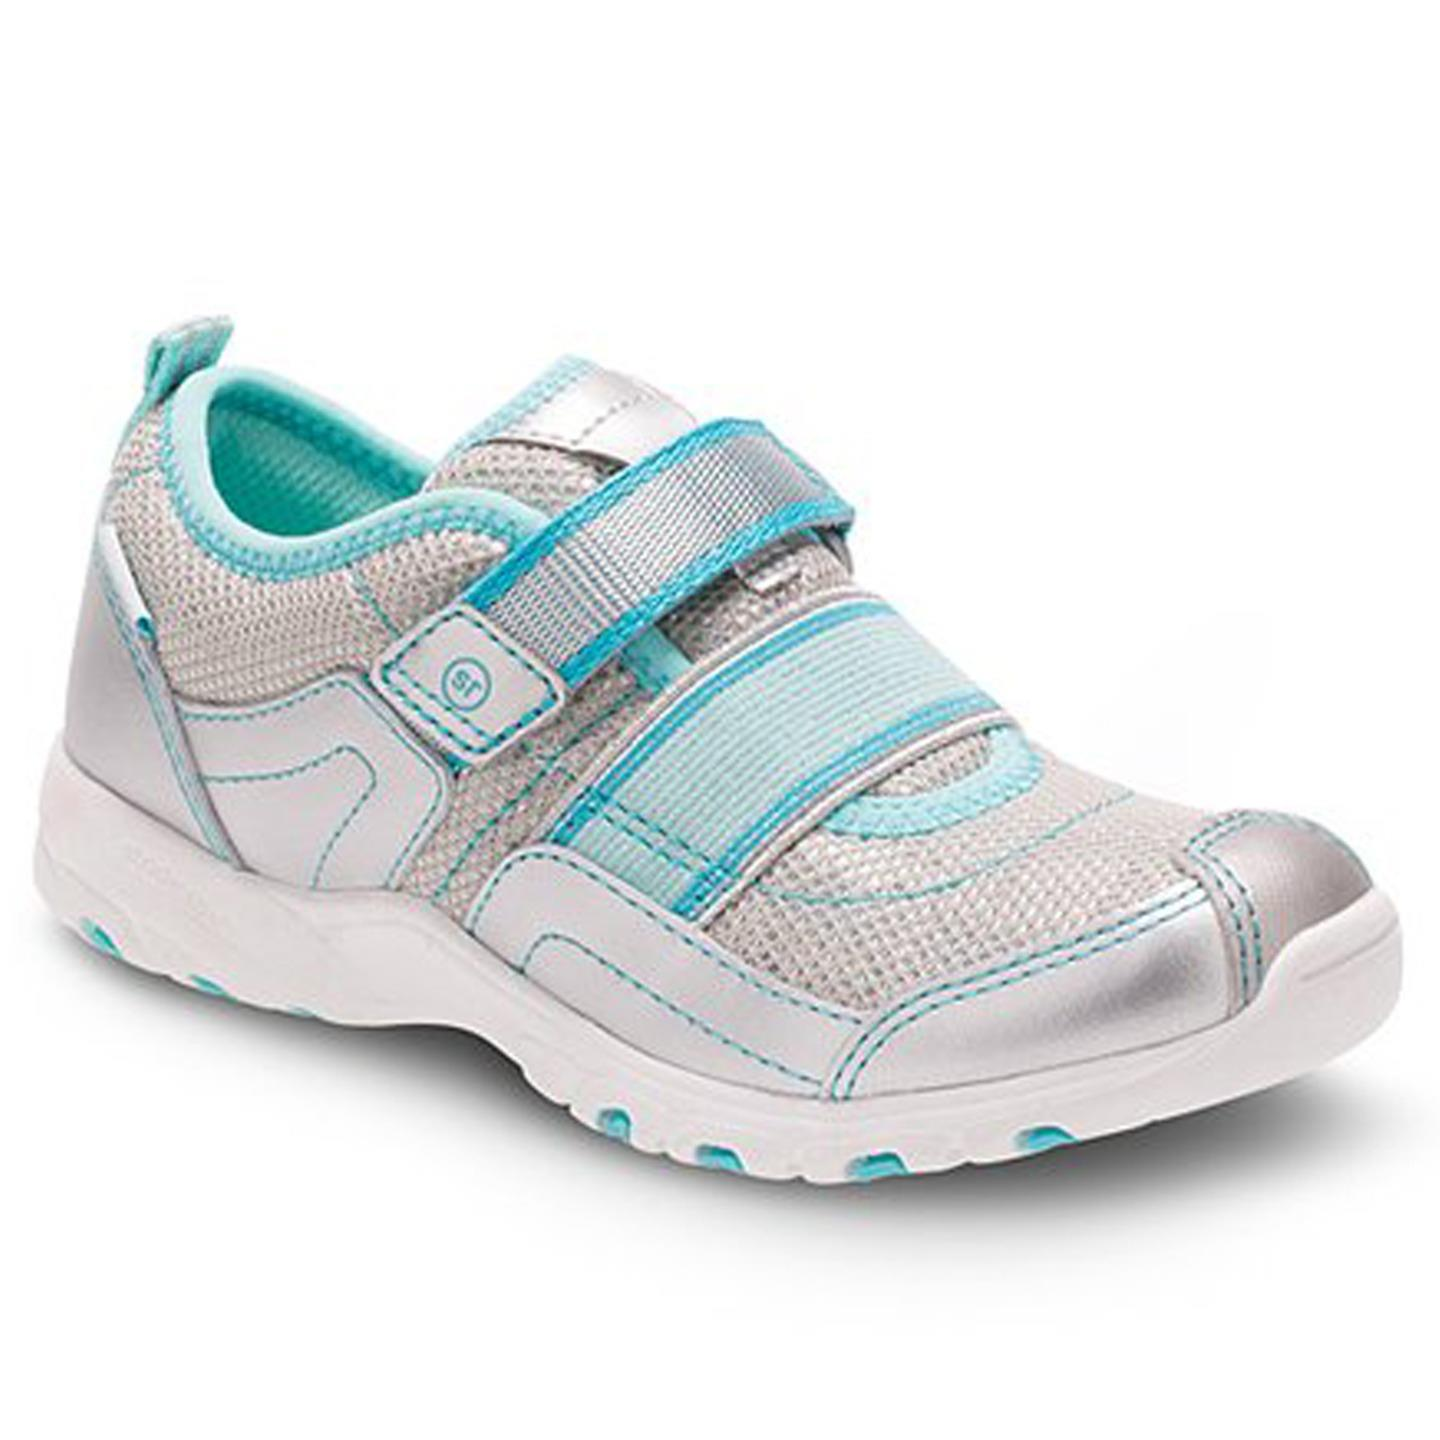 Stride Rite Felicia Girls Silver Turquoise�Sneaker Toddler 11 W by Stride Rite